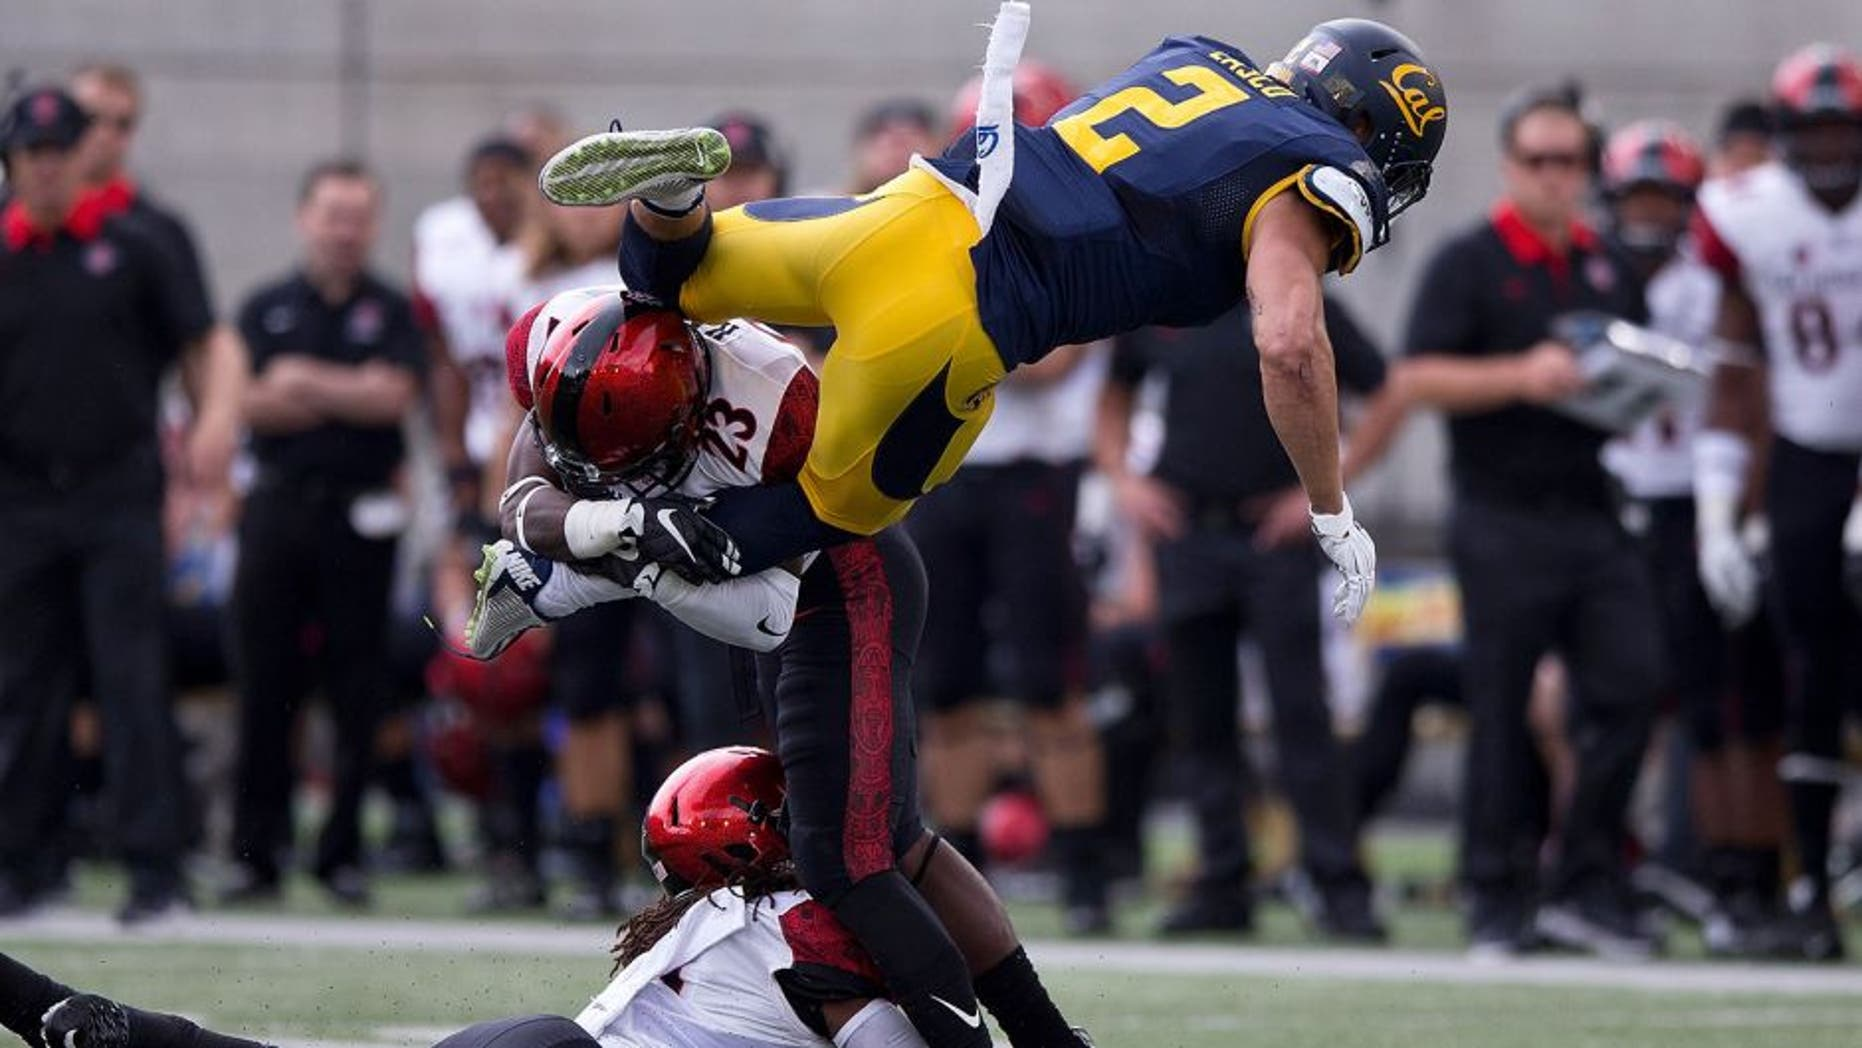 BERKELEY, CA - SEPTEMBER 12: Running back Daniel Lasco #2 of the California Golden Bears jumps past defensive back Na'im McGee #21 of the San Diego State Aztecs into defensive back Damontae Kazee #23 during the first quarter at California Memorial Stadium on September 12, 2015 in Berkeley, California. The California Golden Bears defeated the San Diego State Aztecs 35-7. (Photo by Jason O. Watson/Getty Images)